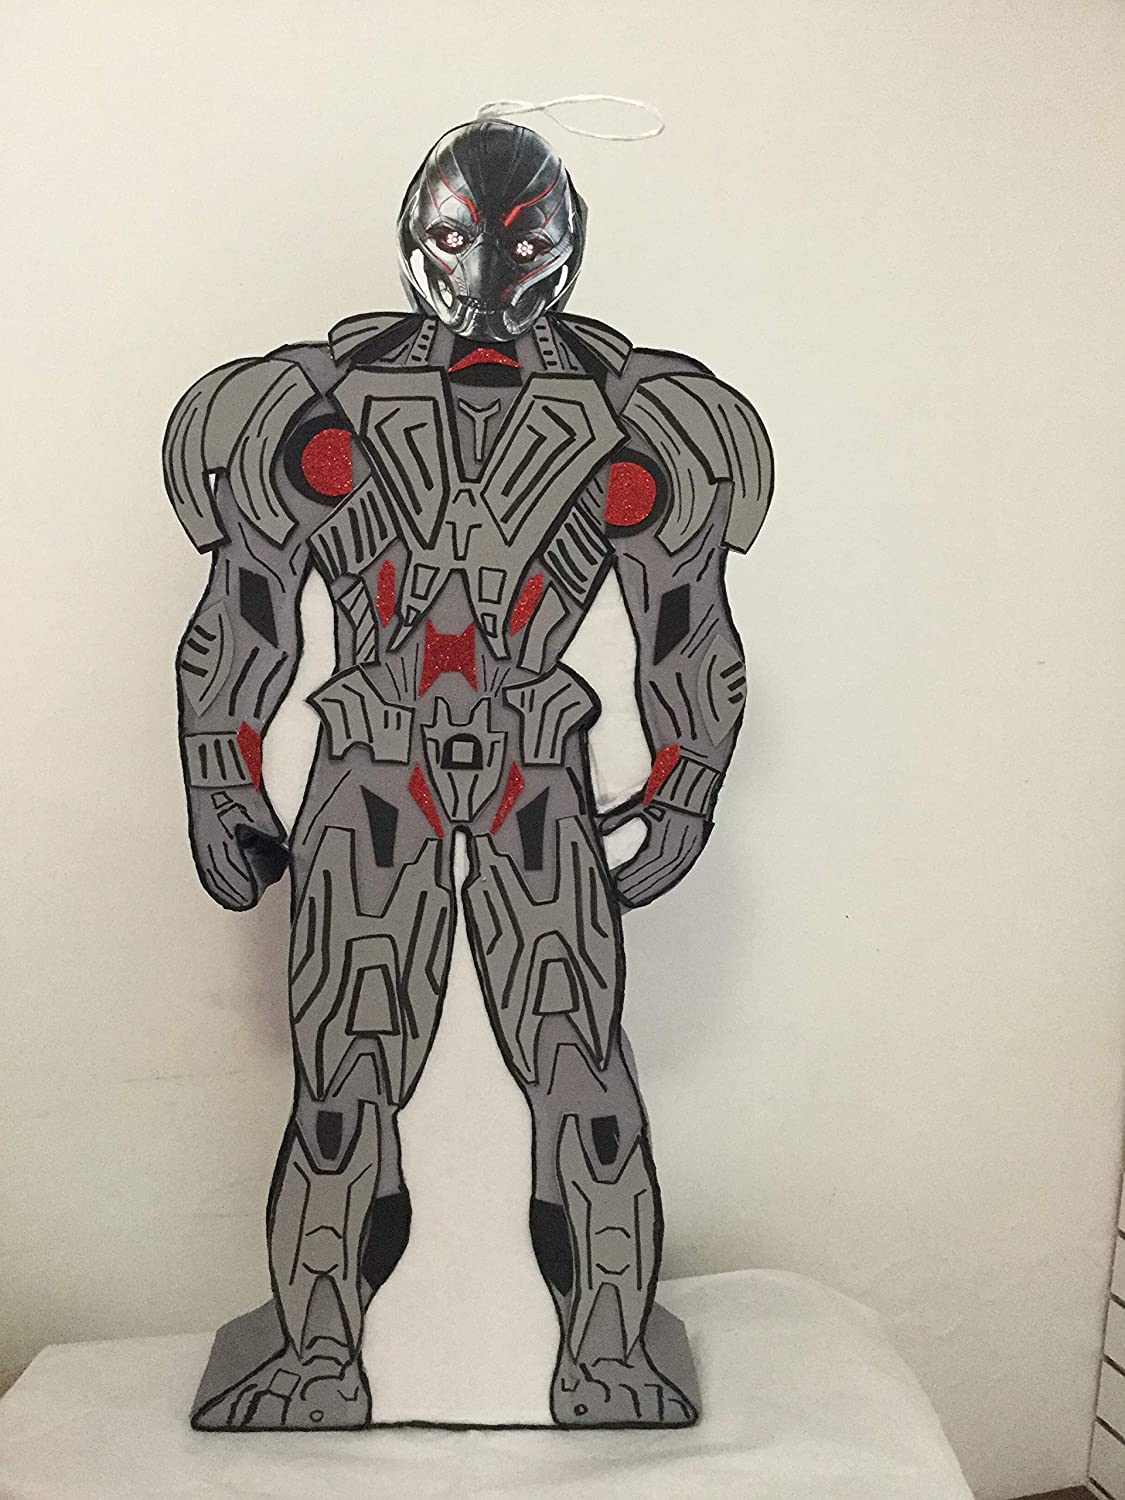 Ultron pinata avengers party supplies Ultron avengers birthday party